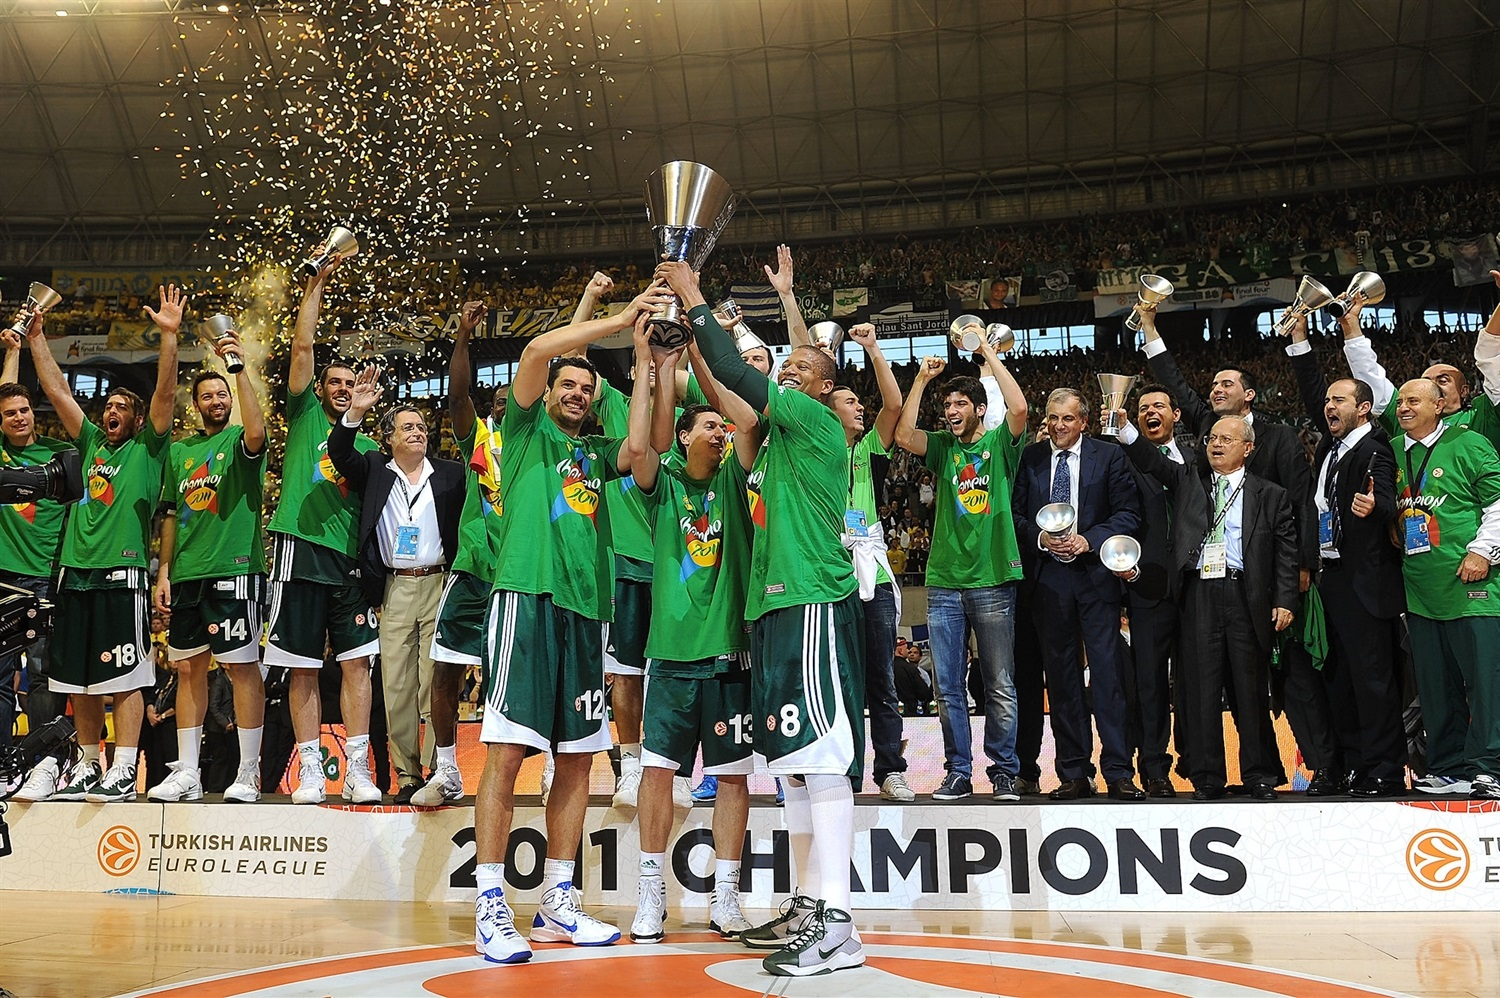 Panathinaikos Champ Final Four Barcelona 2011 - EB10